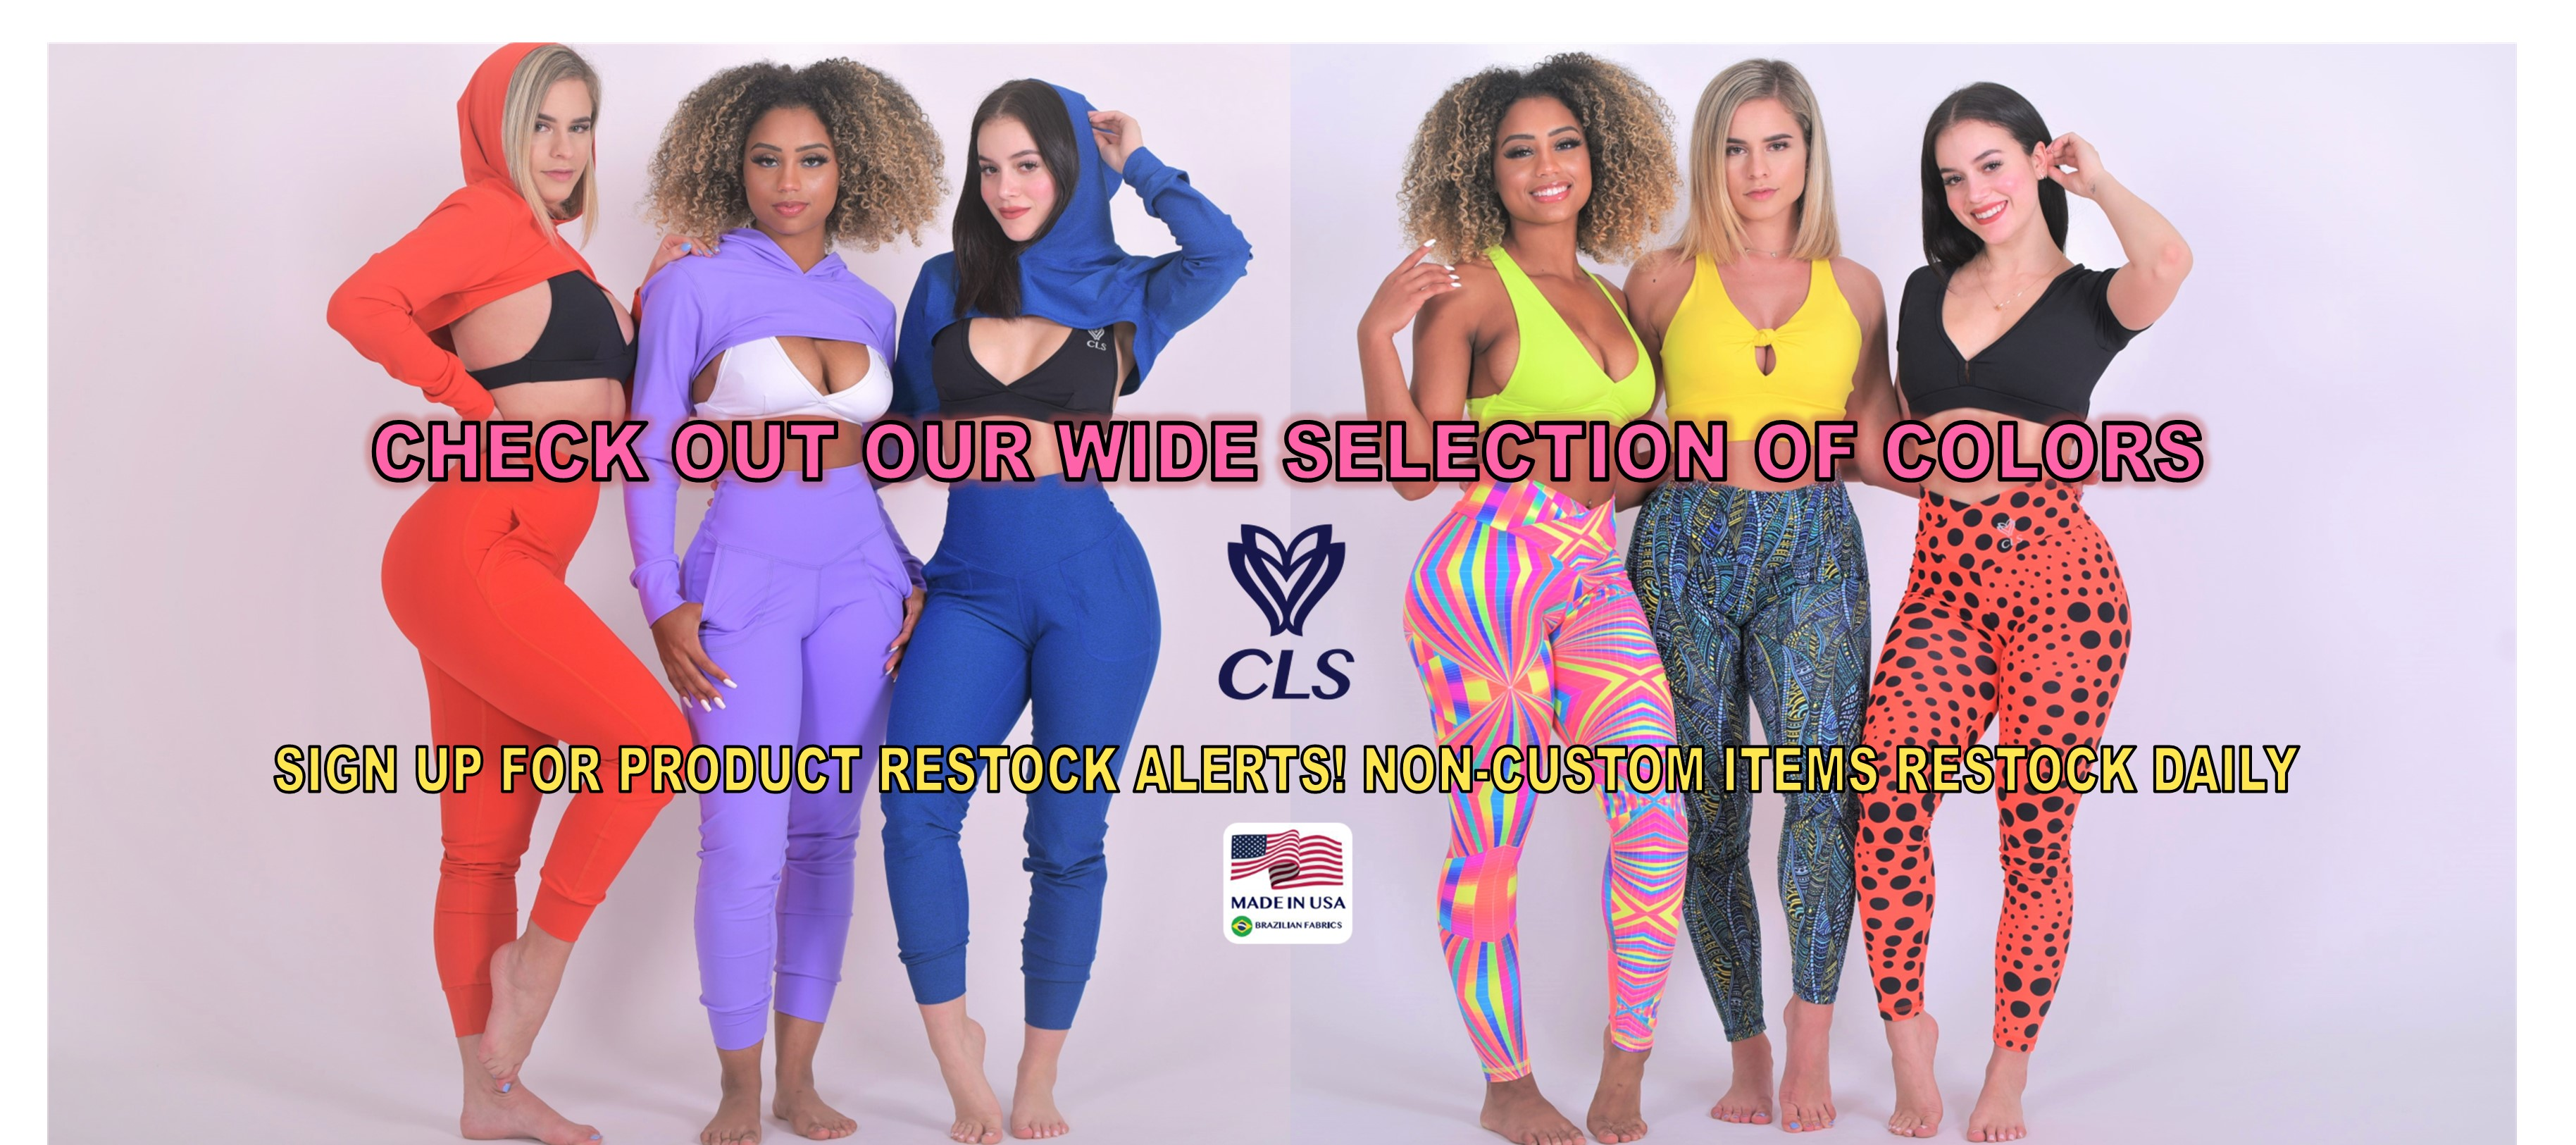 https://www.clssportswear.com/wp-content/uploads/2020/05/Announce_Slider_Wide-Selection-of-Colors.jpg